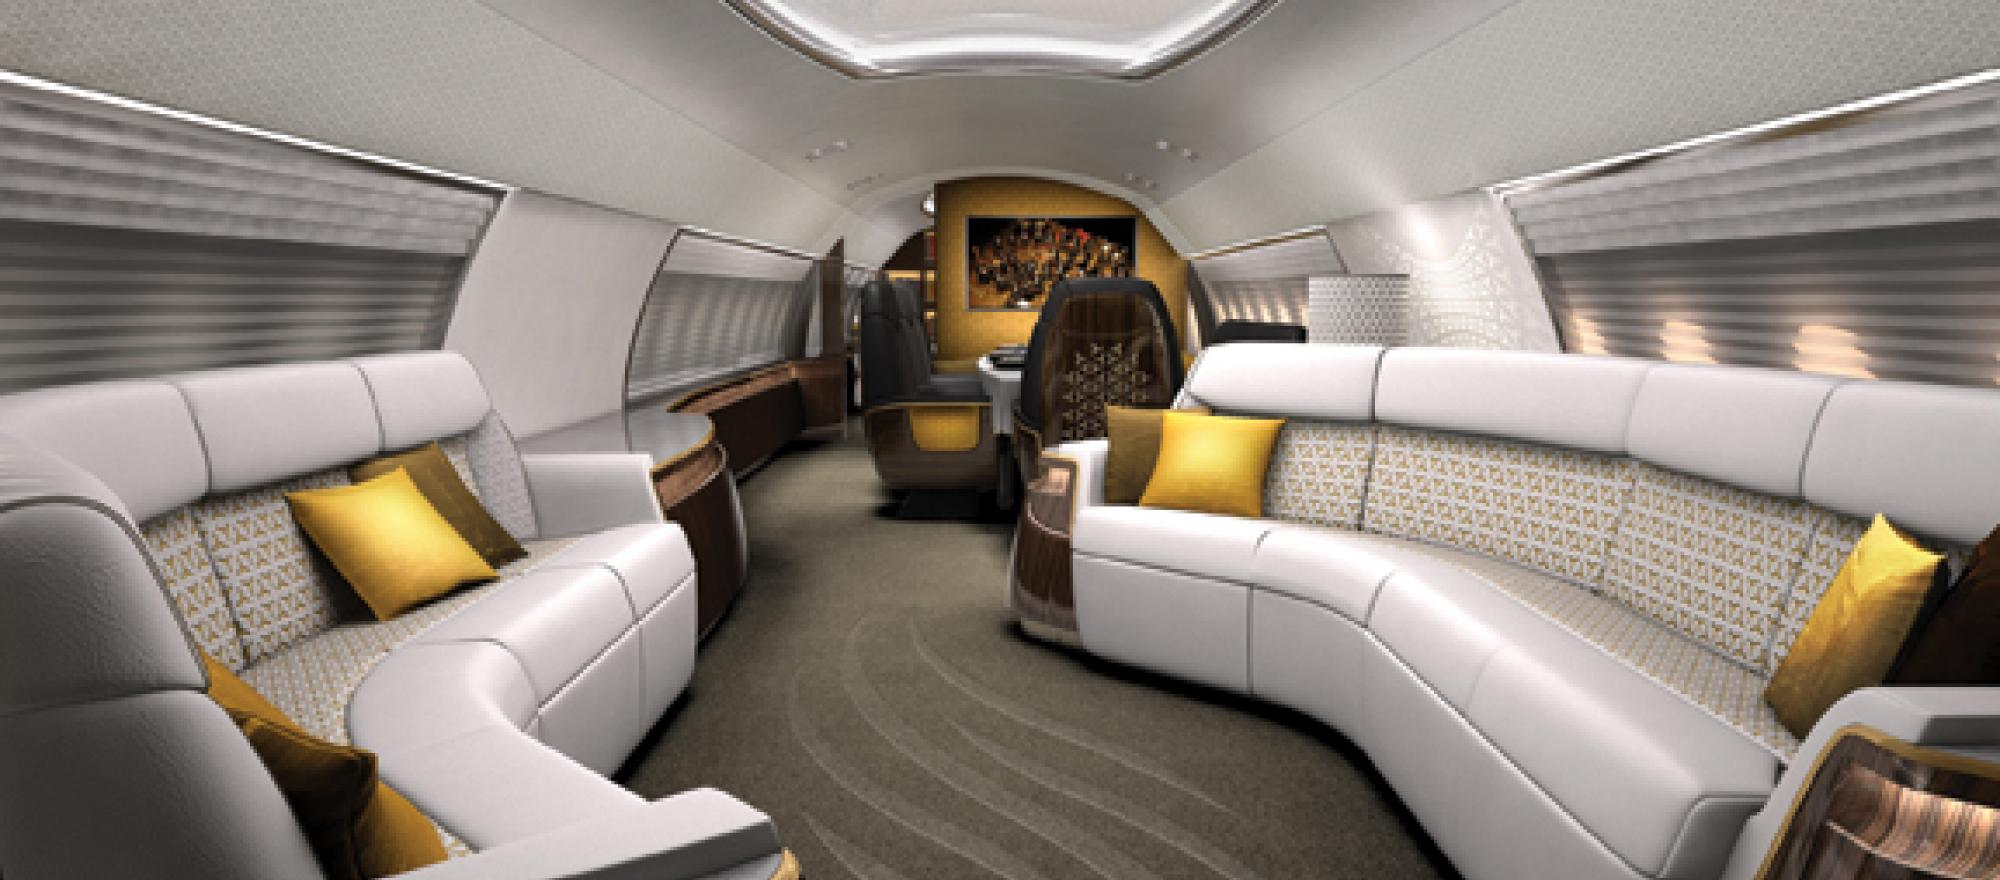 Small Houses For Sale Large Cabin Jets At Turboprop Prices Business Jet Traveler